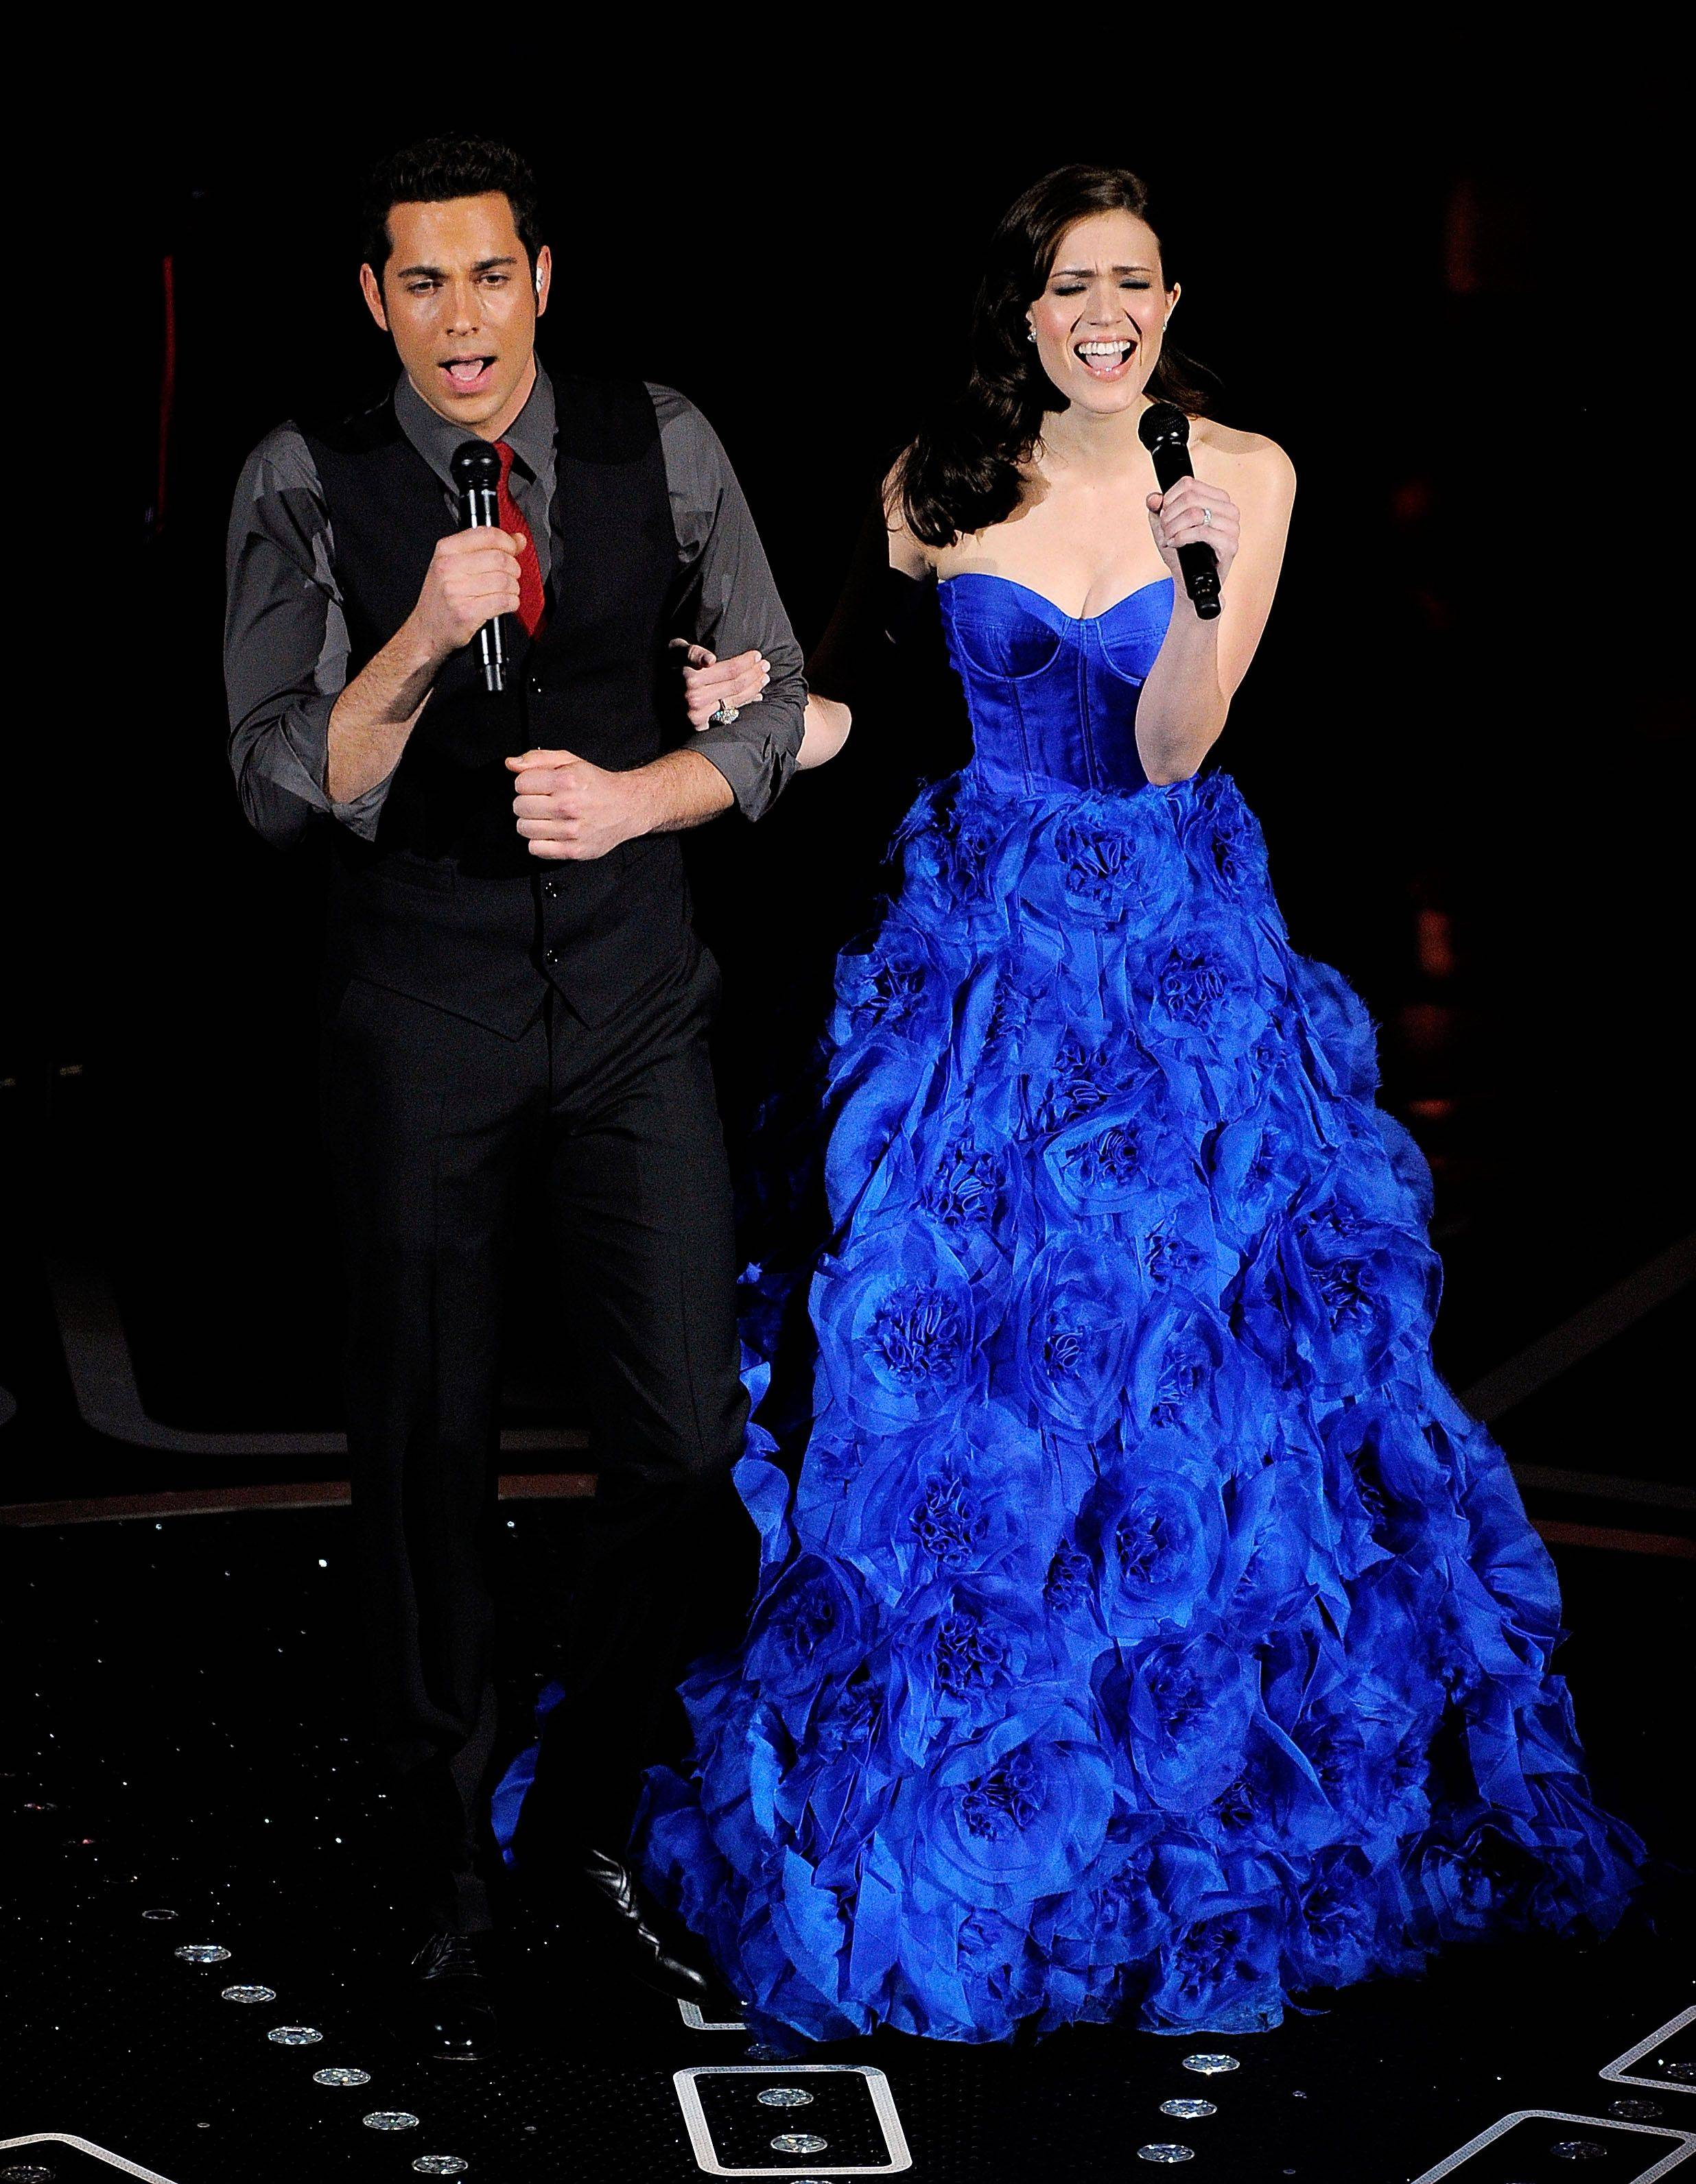 Associated PressActor Zachary Levi and Mandy Moore perform during the 83rd Academy Awards.